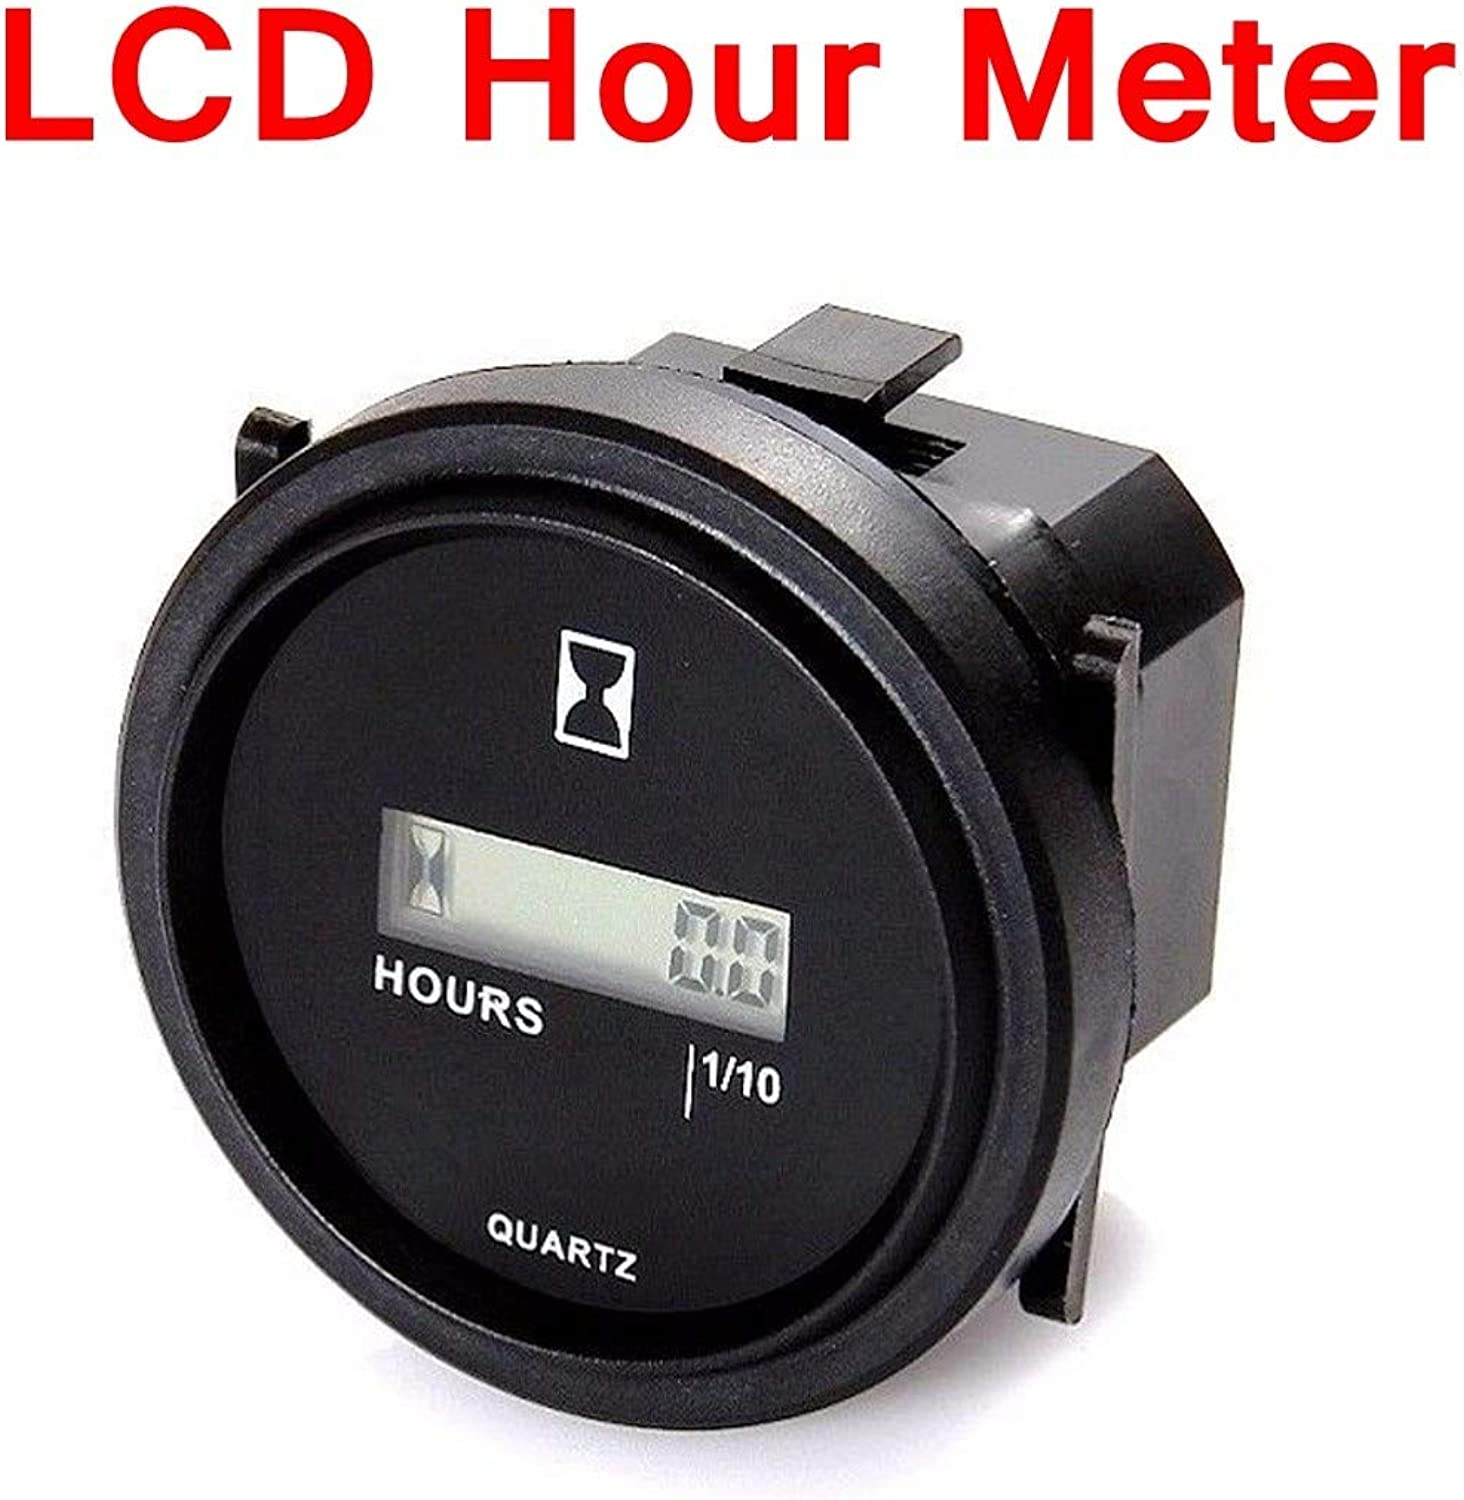 Gift4Car  12 24 36V 2 inch Digital LCD Display Hour Meter CE Gauge for Marine Boat Engine Tractor Generator